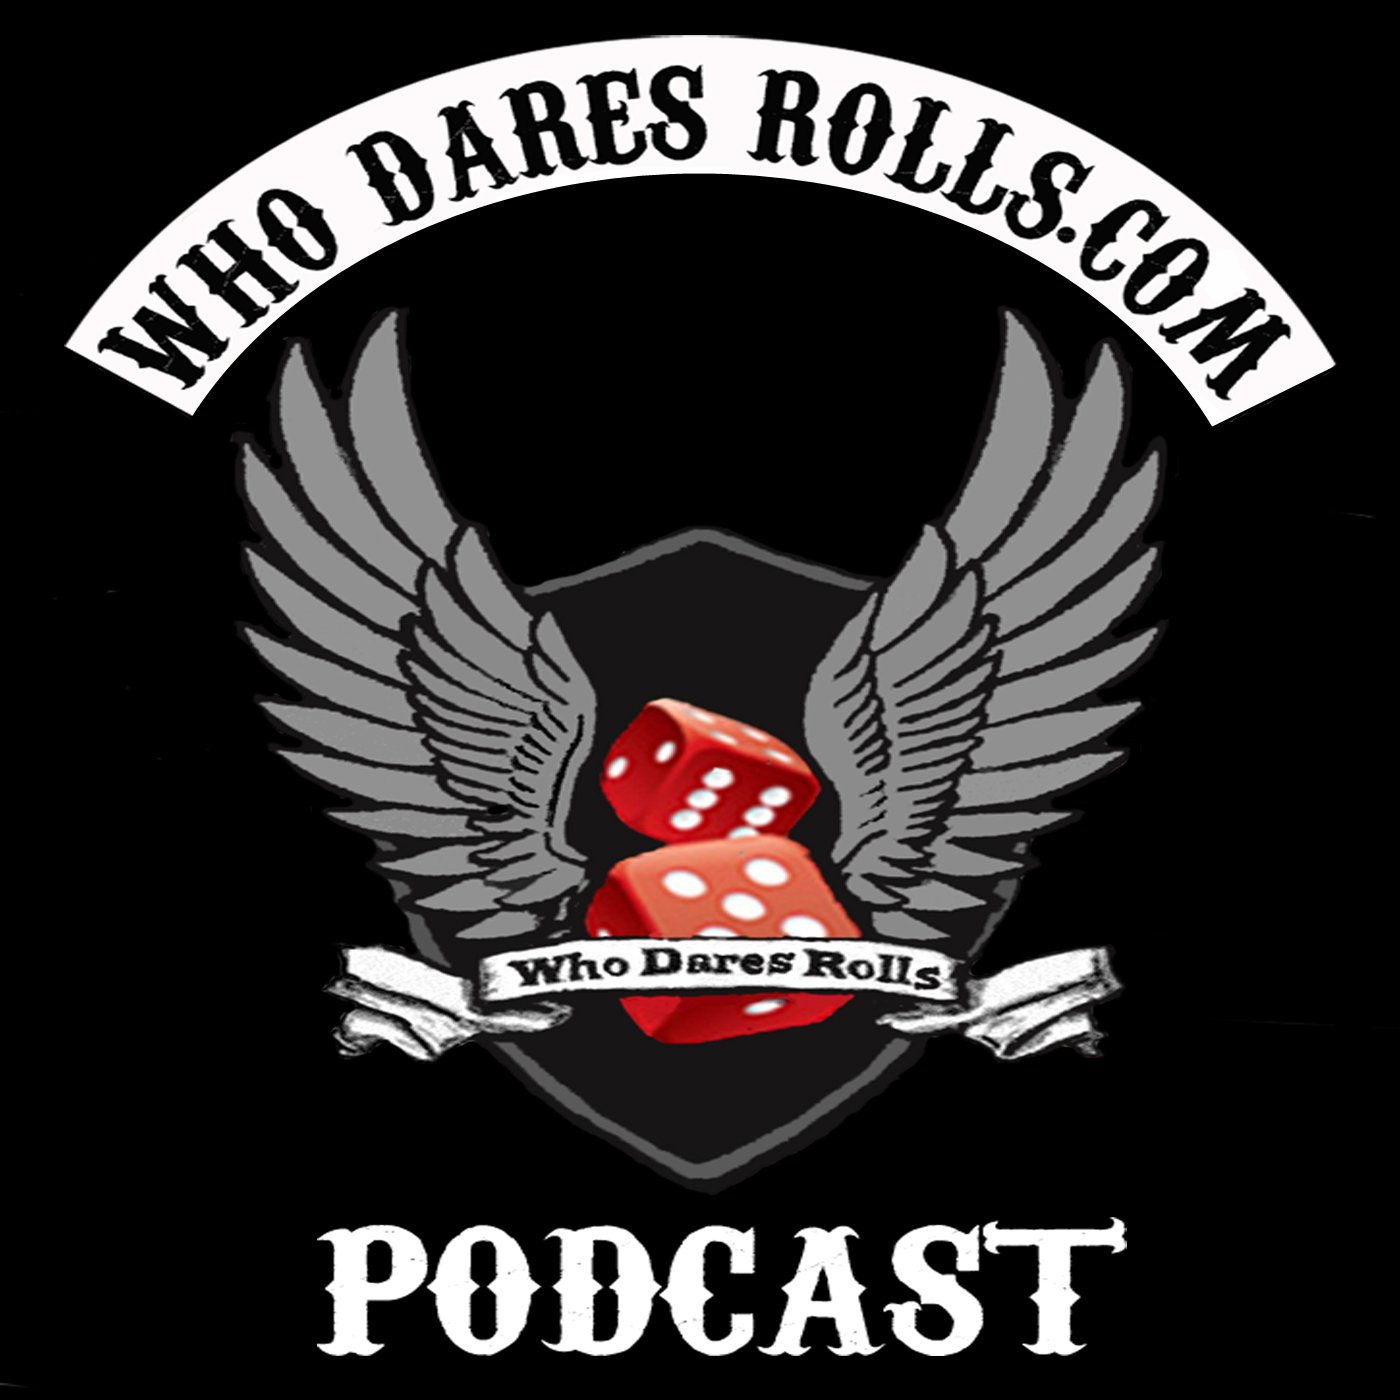 Who Dares Rolls Gaming Podcast